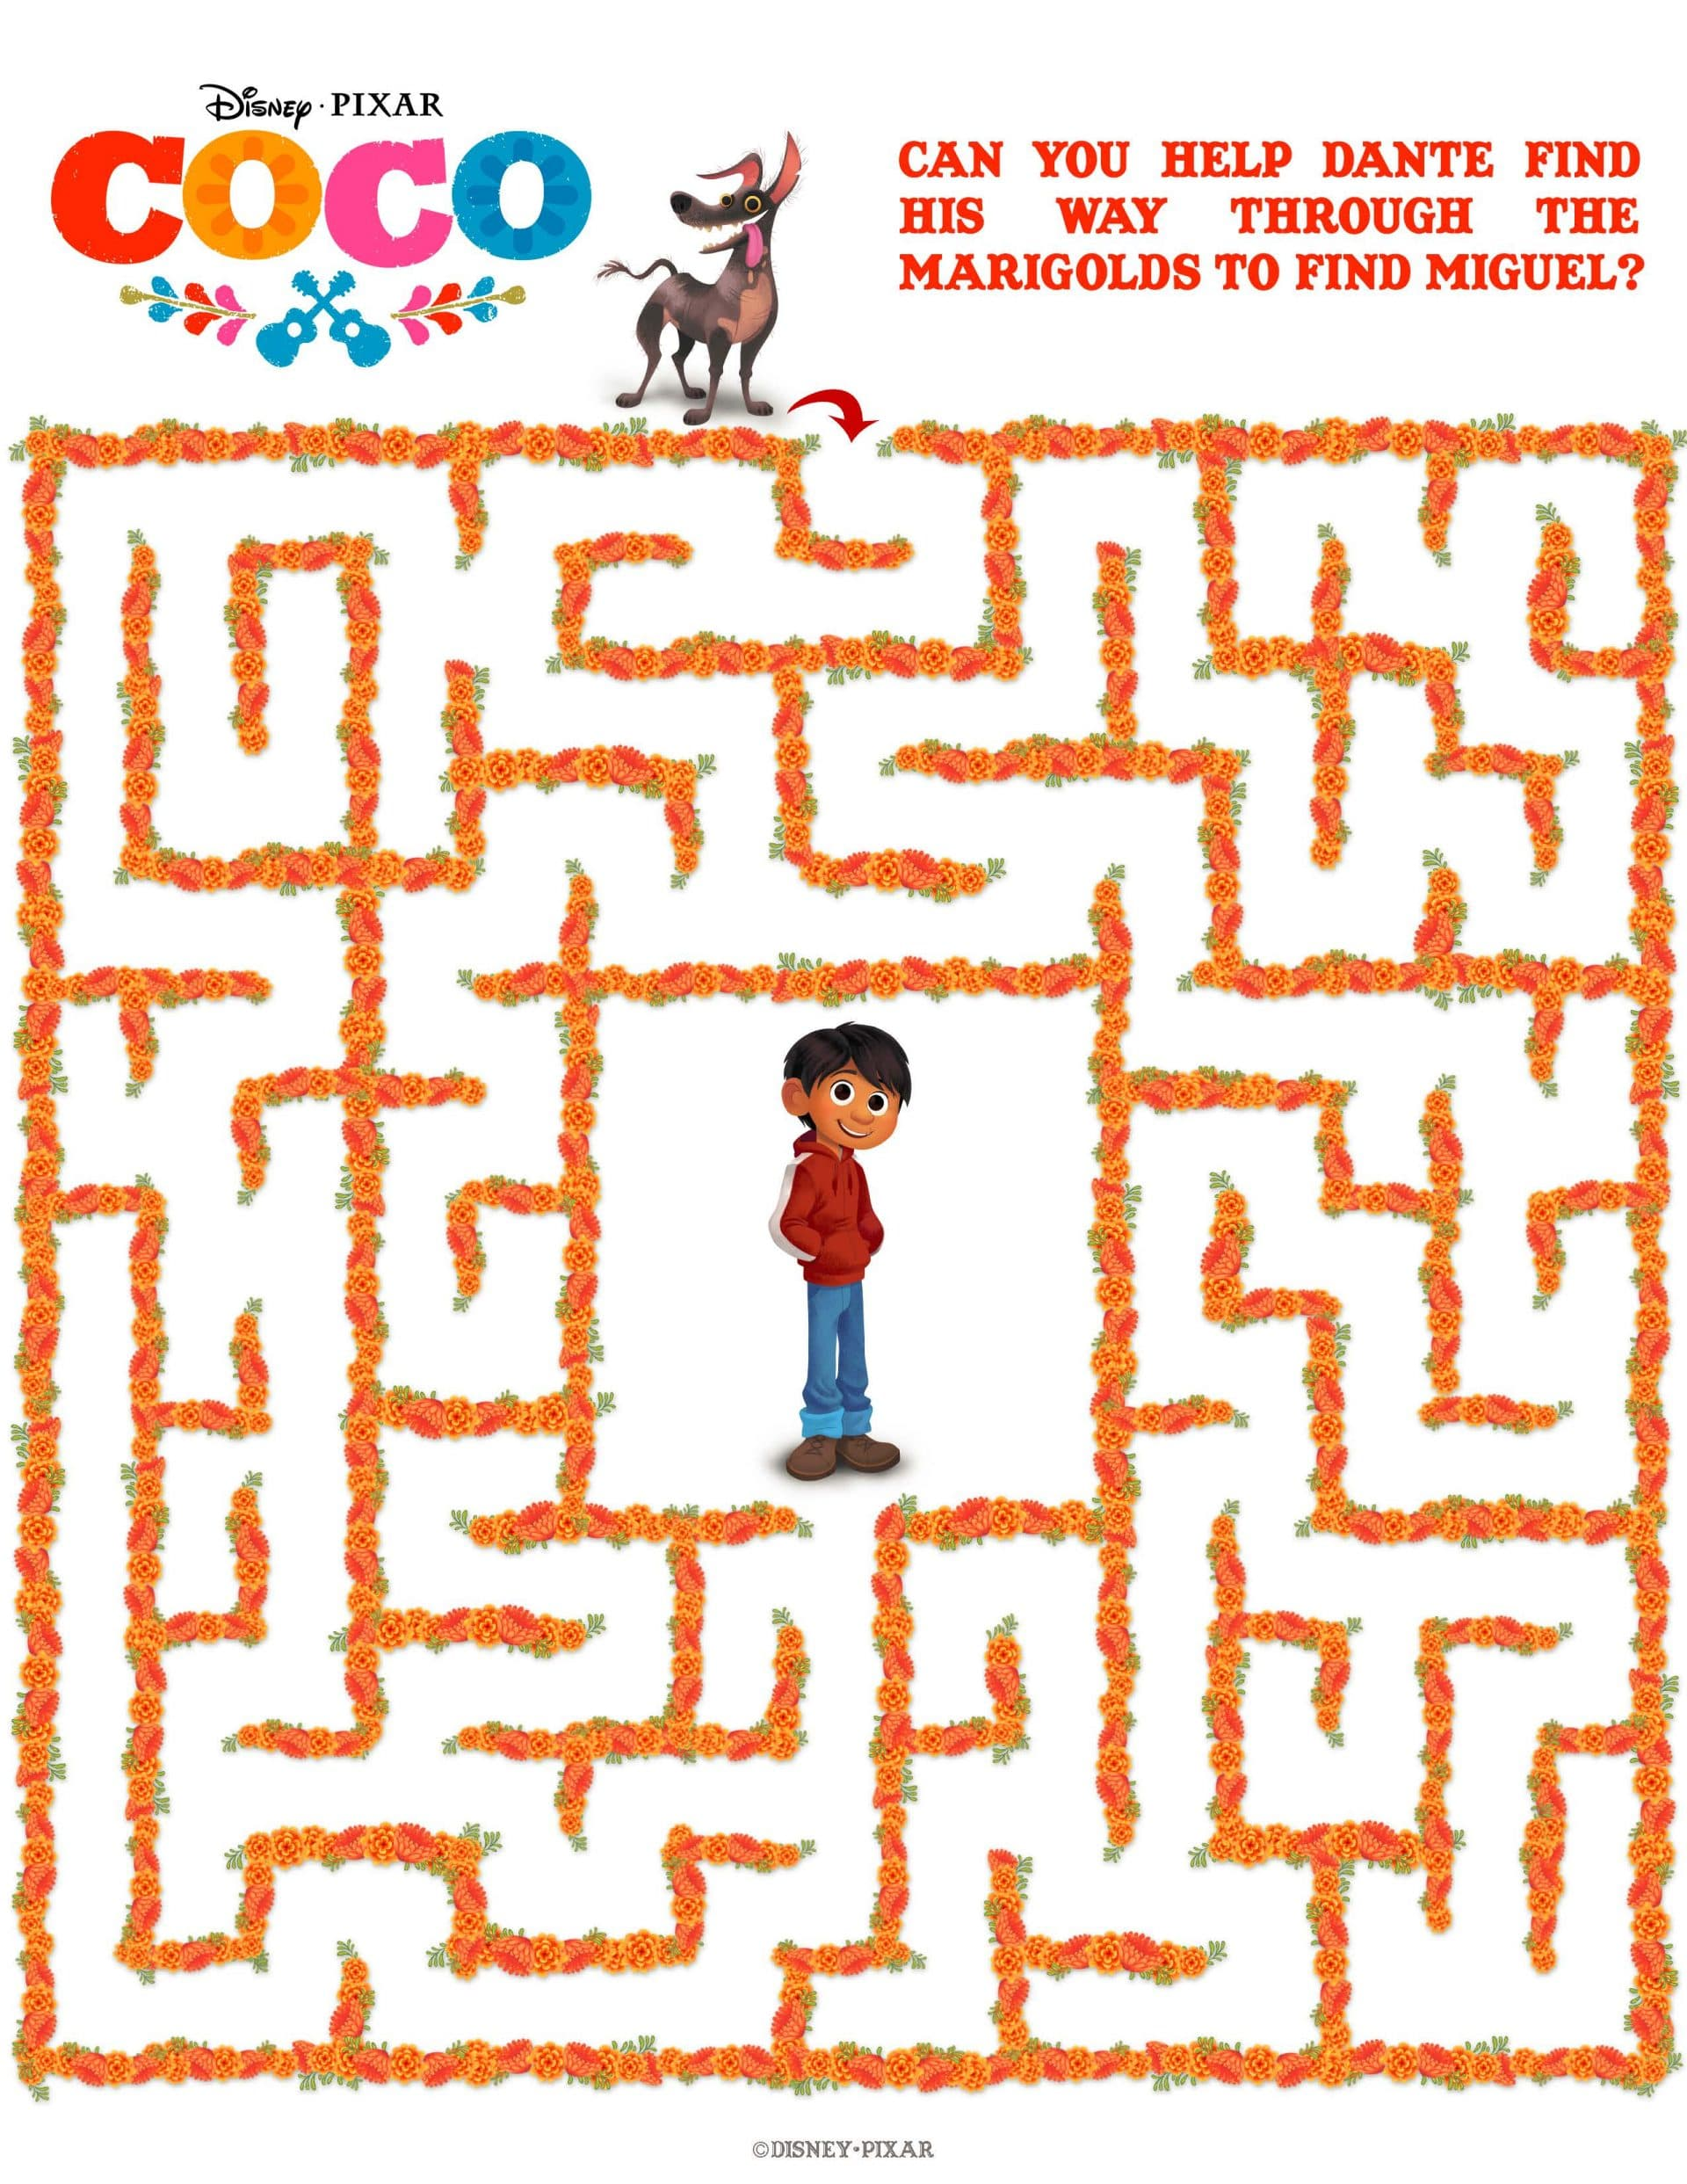 Coco Activity Sheets - Maze